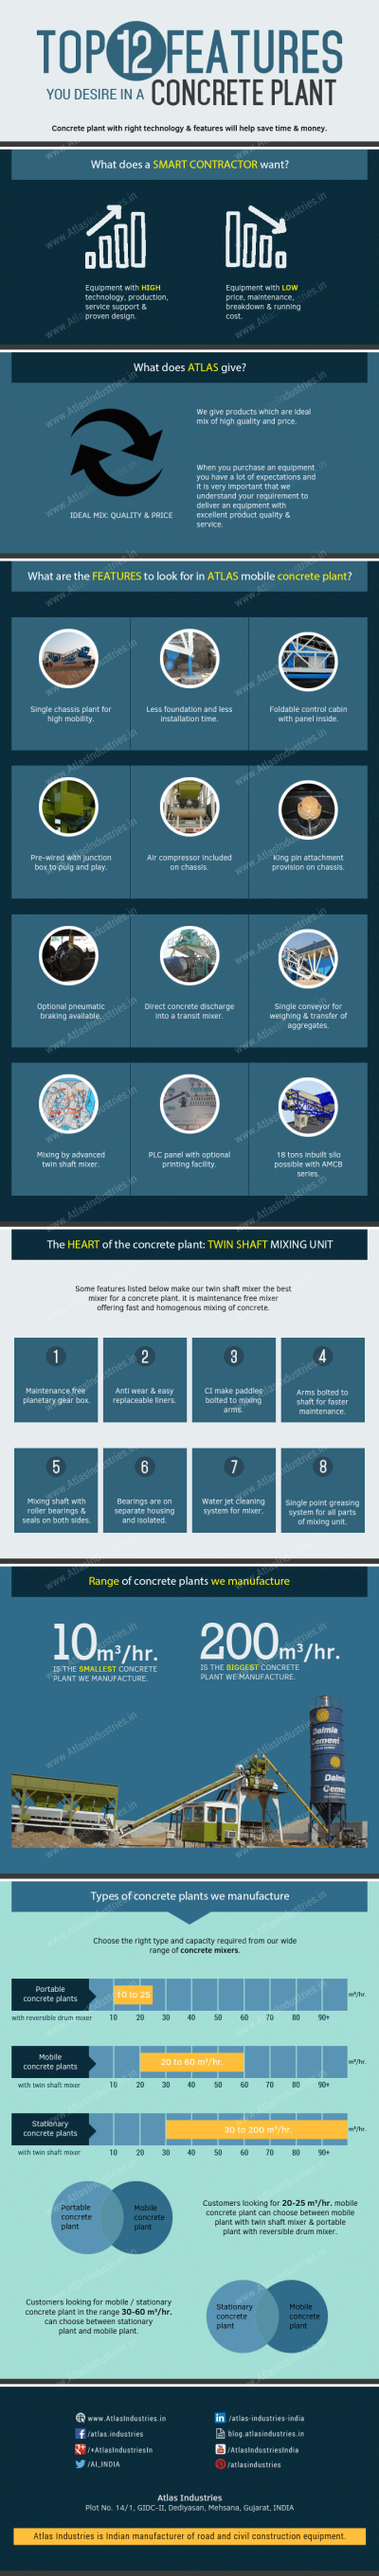 Top 12 features you desire in a concrete plant – Infographic